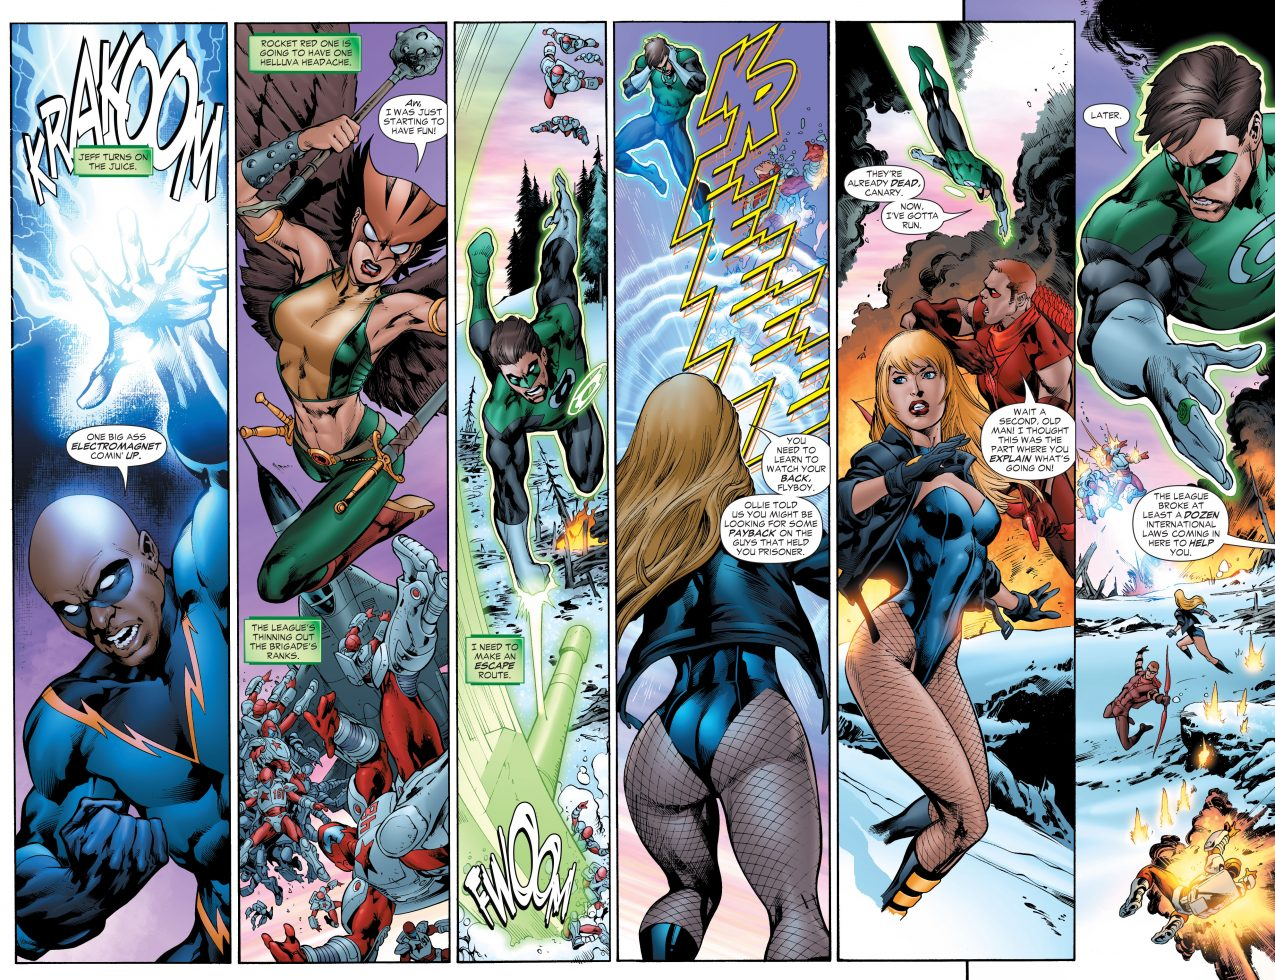 The Justice League VS The Rocket Red Brigade